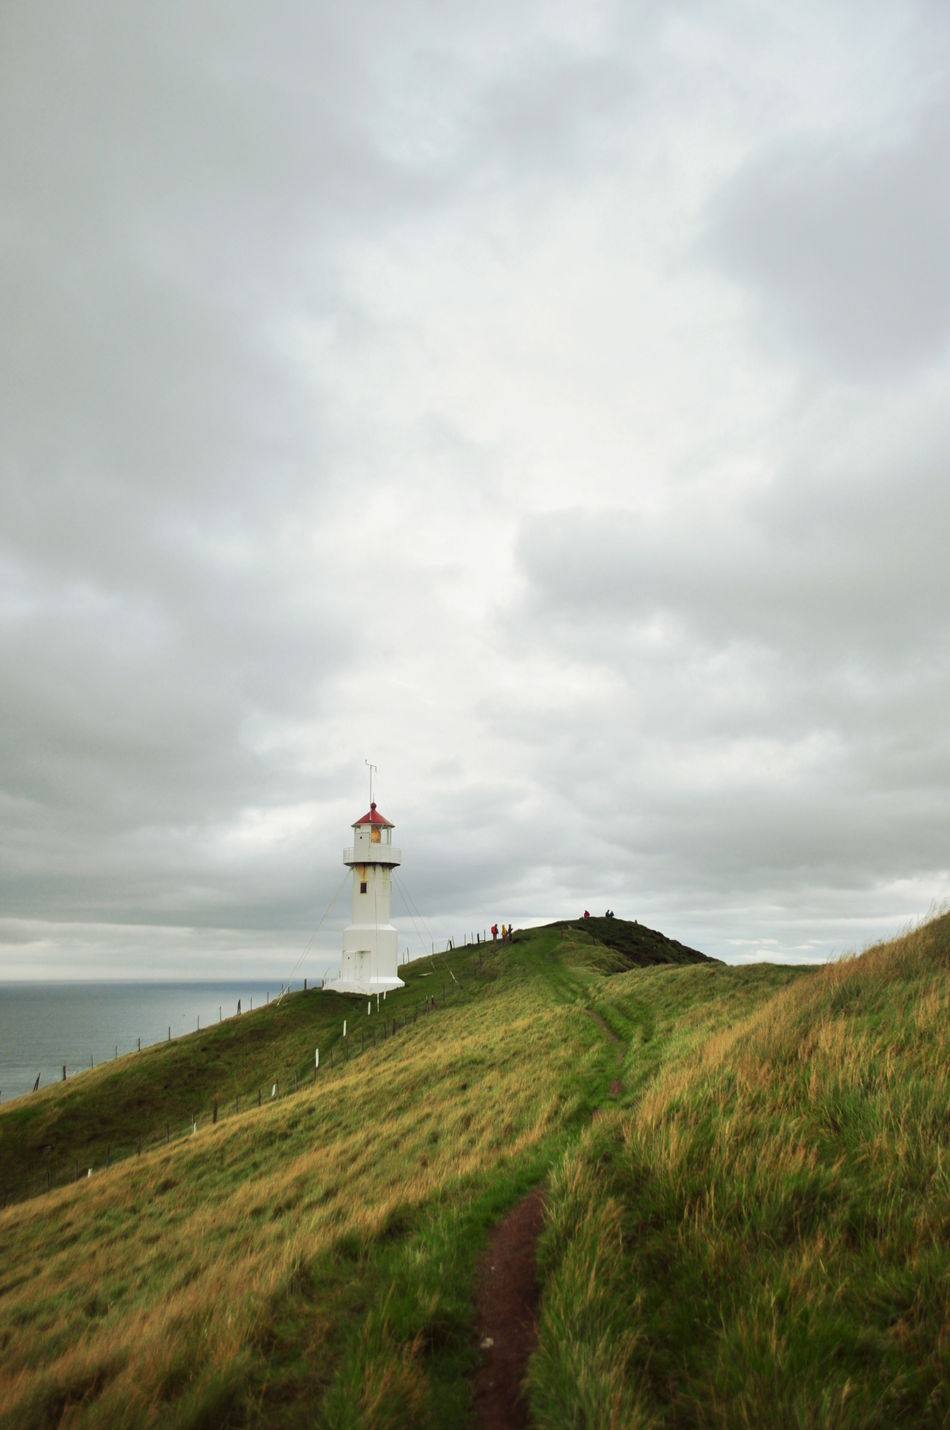 Beauty In Nature Cloudy Day Lighthouse Nature Non-urban Scene Sea Sky Tourism Tranquil Scene Water